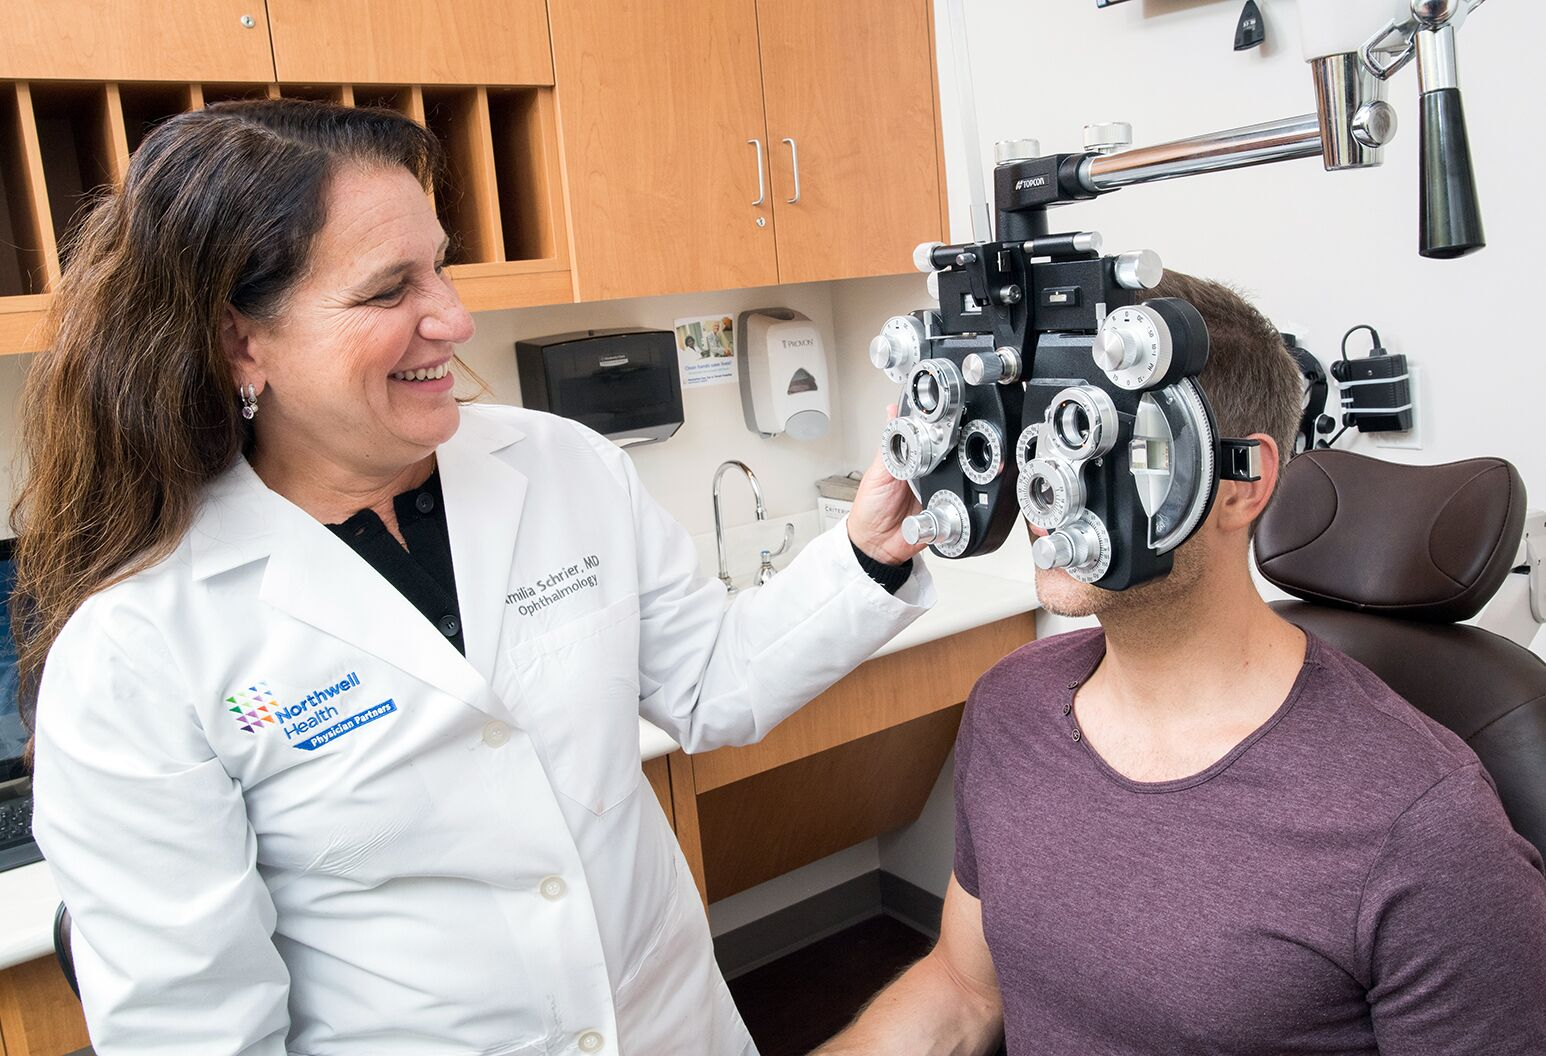 Patient getting their vision tested.